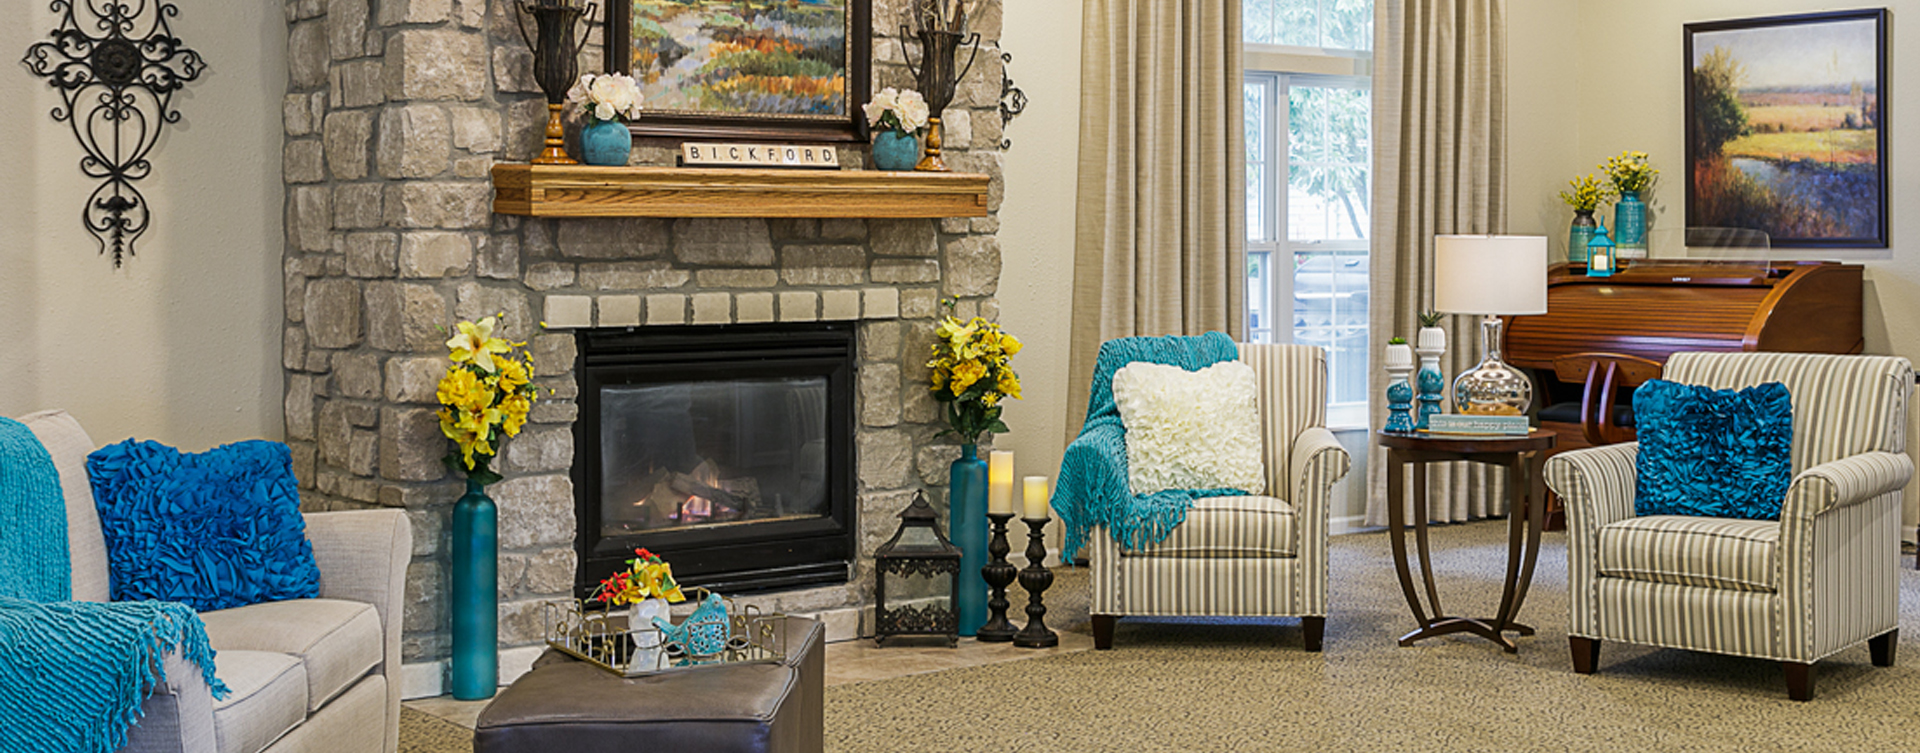 Socialize with friends in the living room at Bickford of Omaha - Blondo